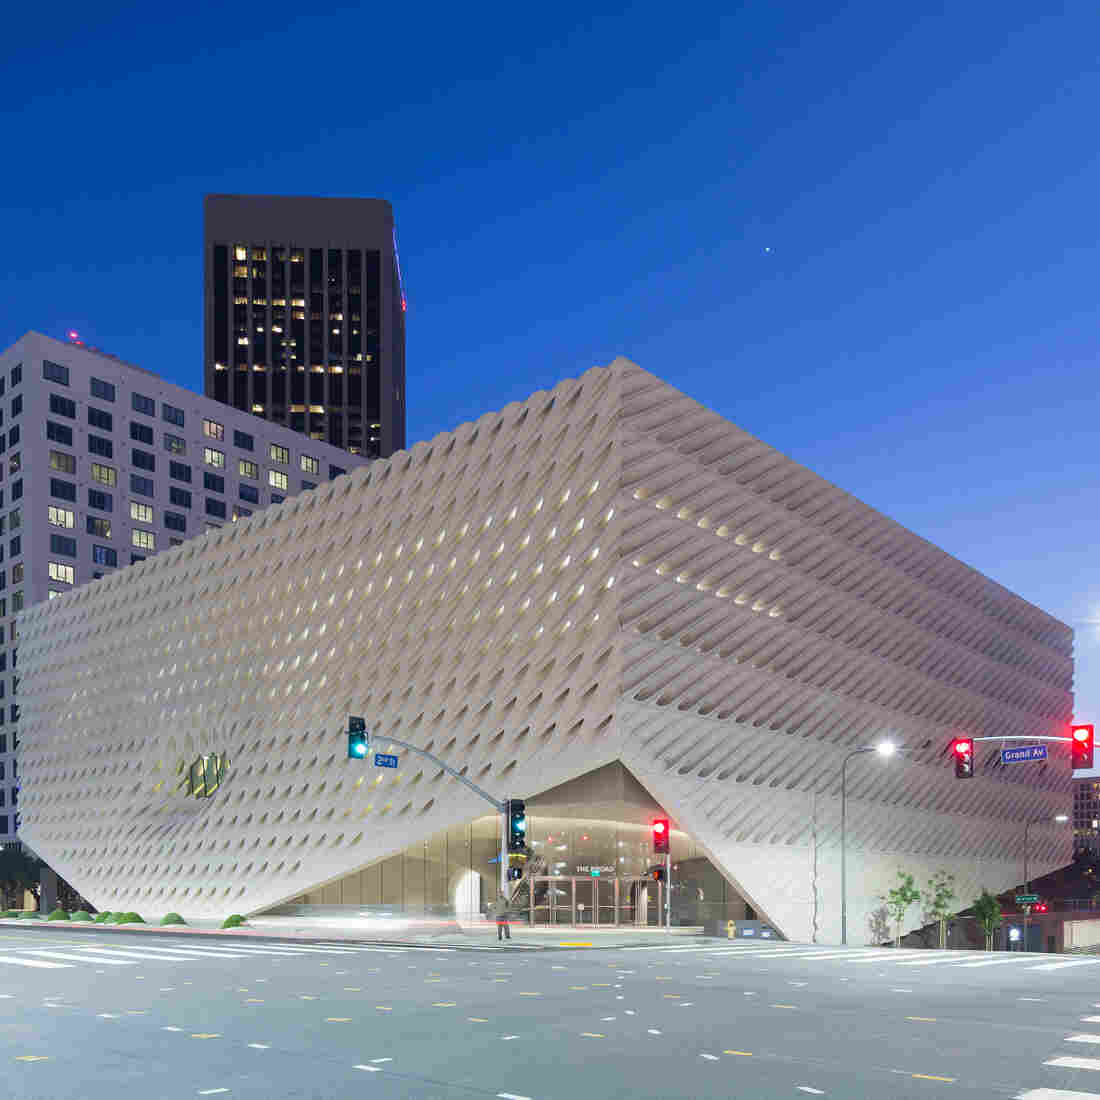 The Broad Museum Is A Contemporary Art Collector's Gift To Los Angeles